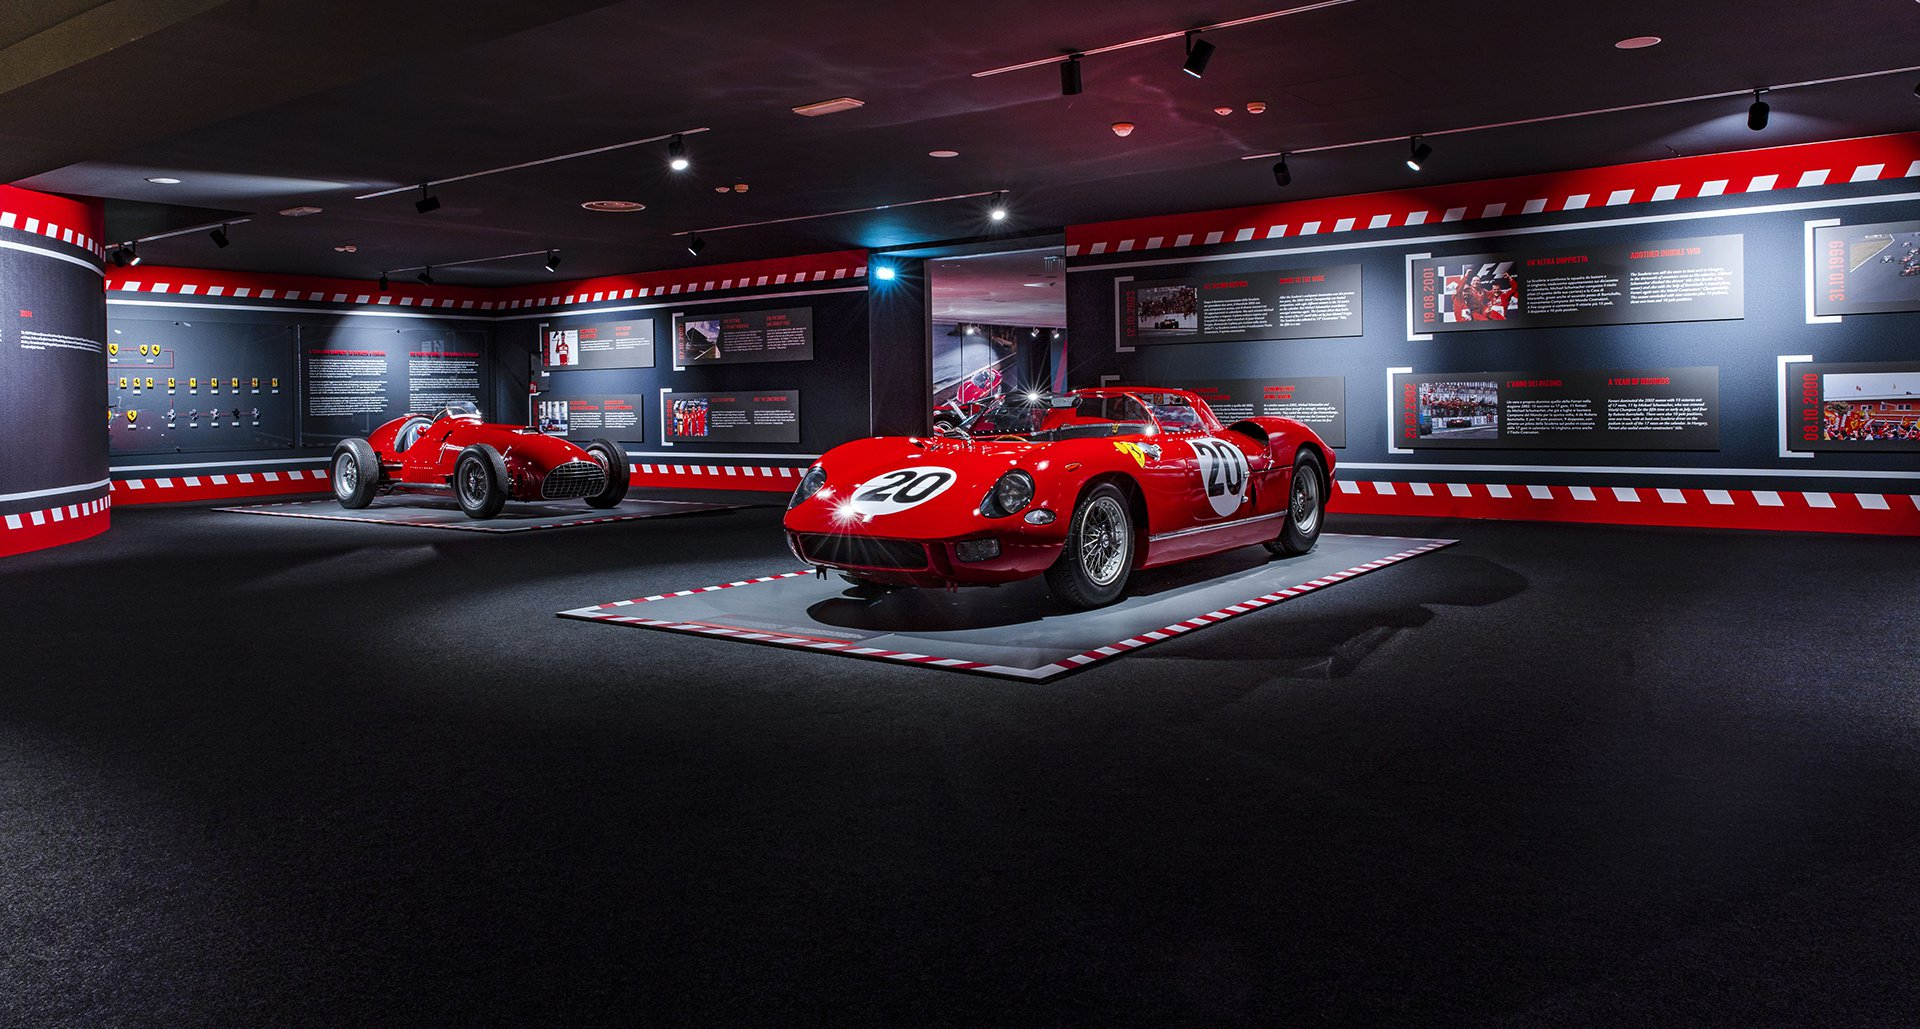 Ferrari-90-Years-Of-Racing-Special-Exhibition-5